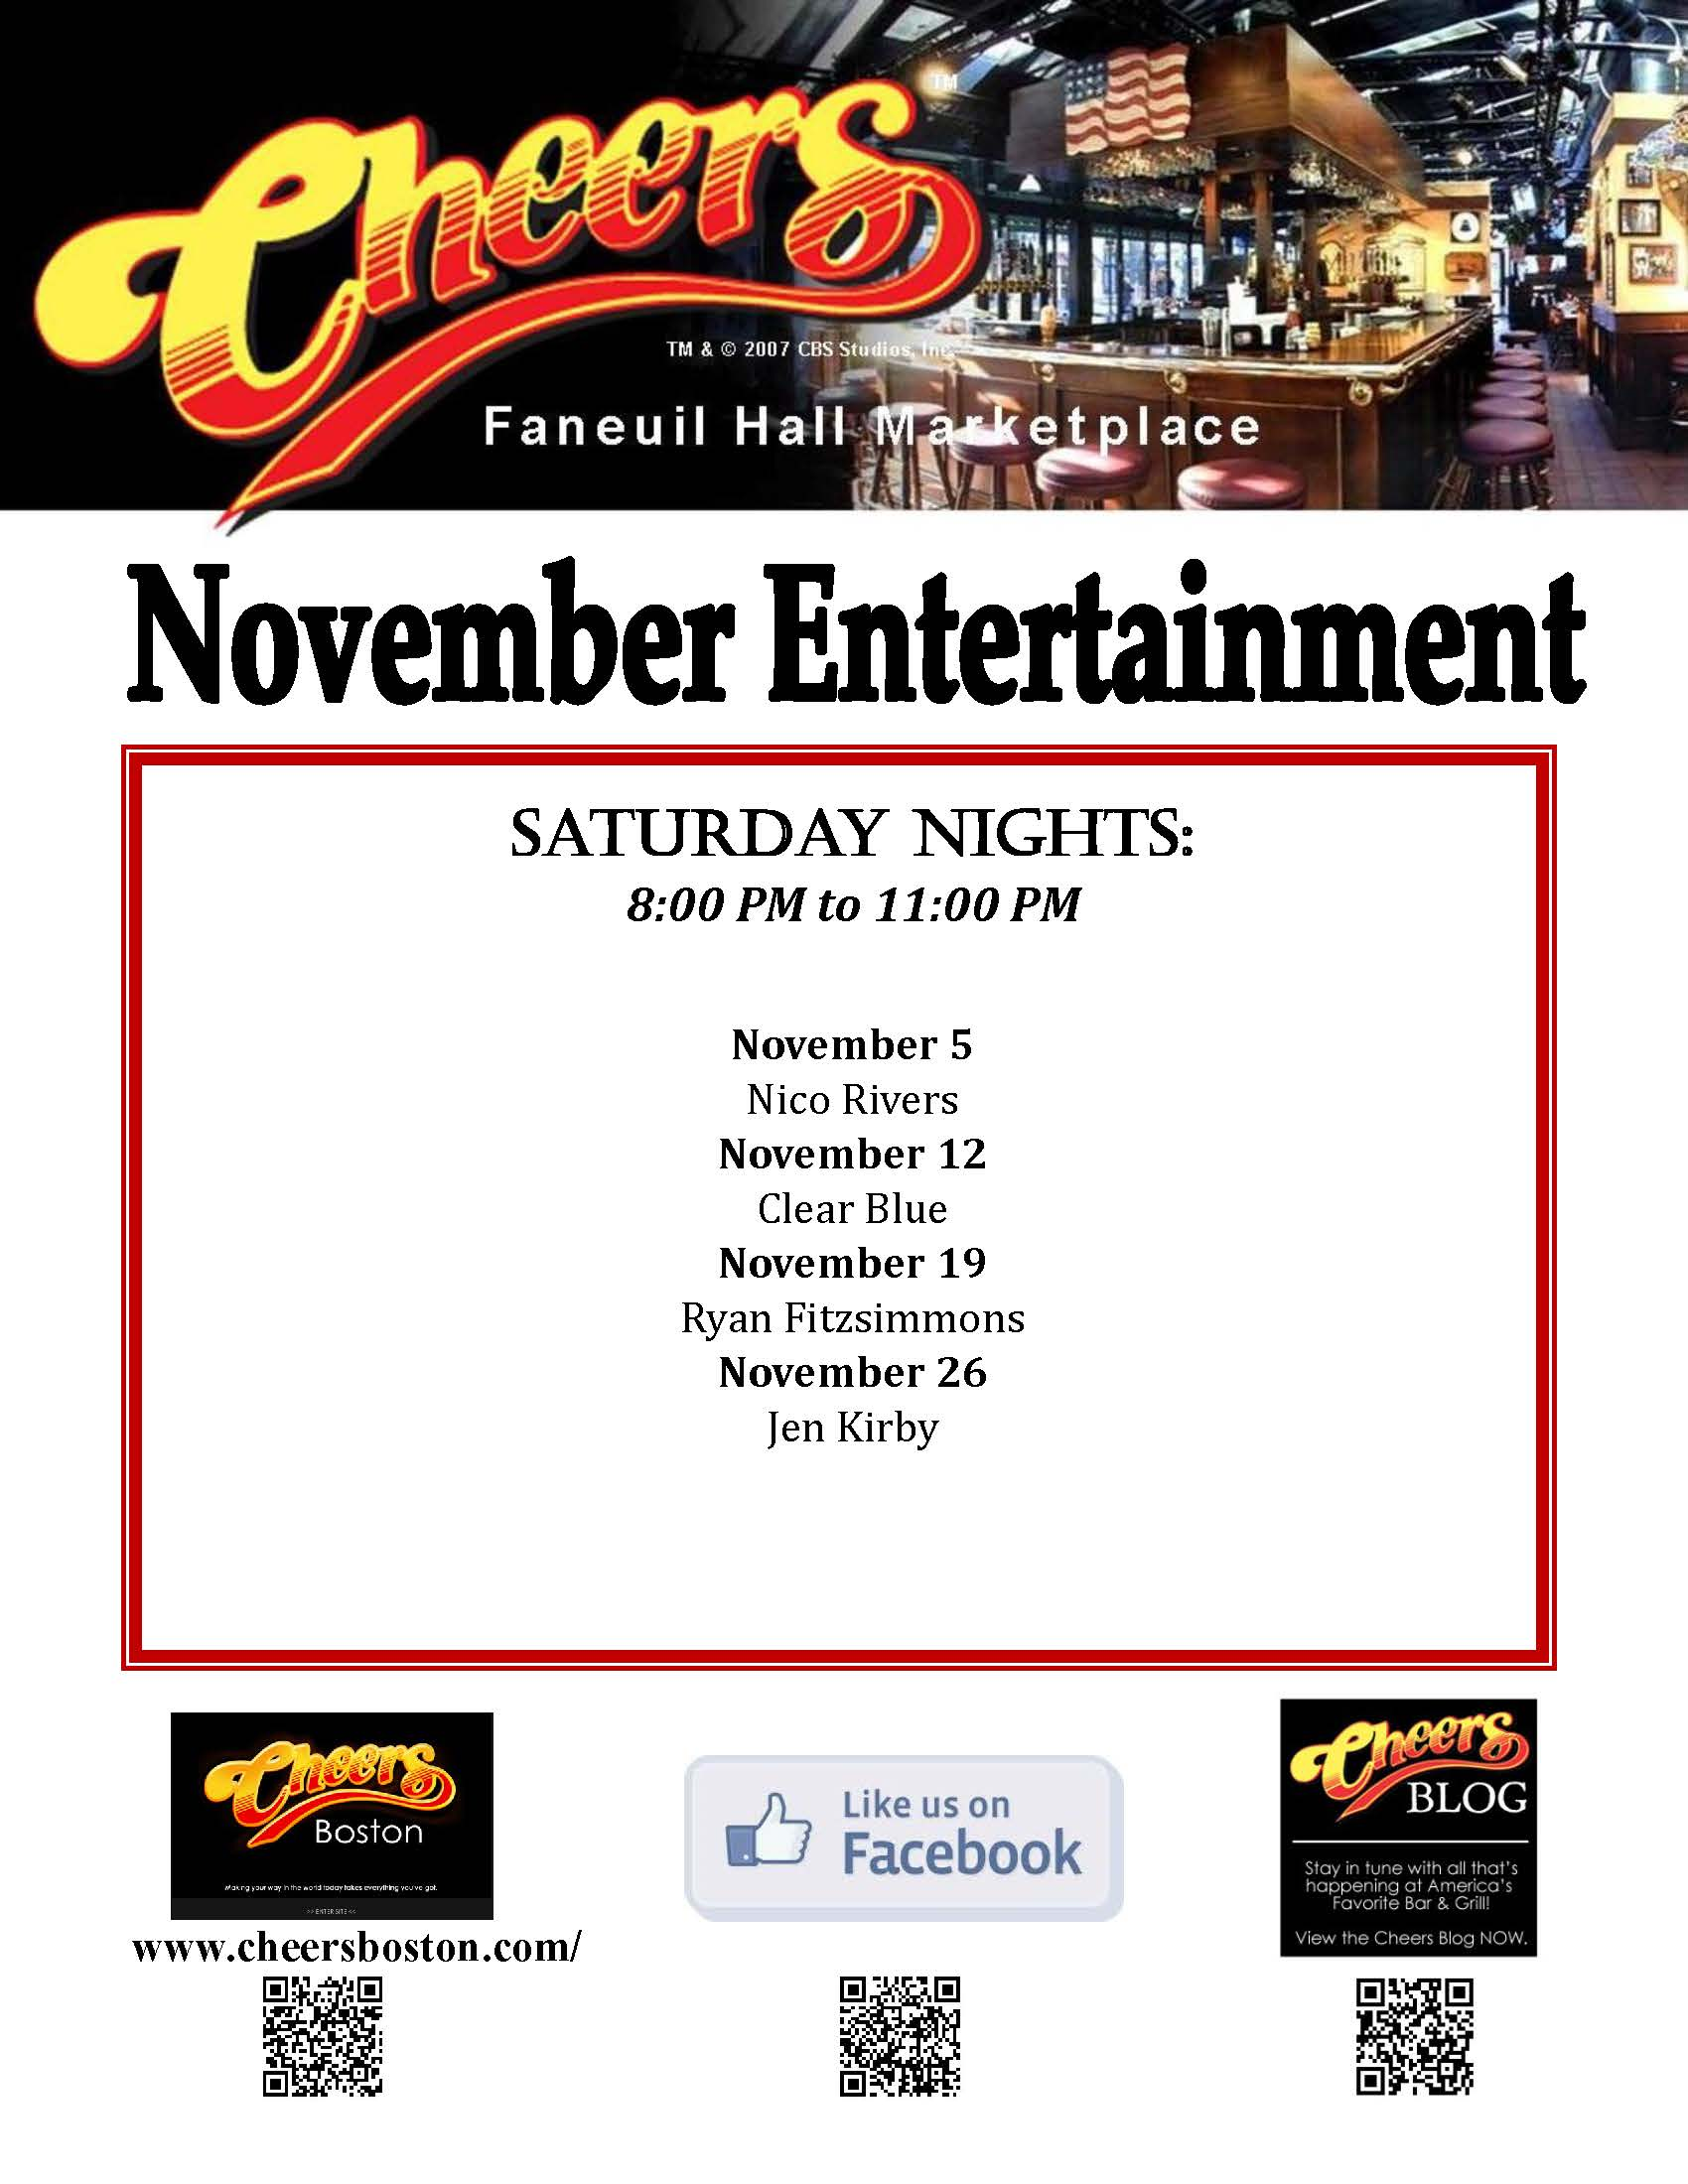 Visiting us in November - See our Live Entertainment at Cheers Faneuil Hall